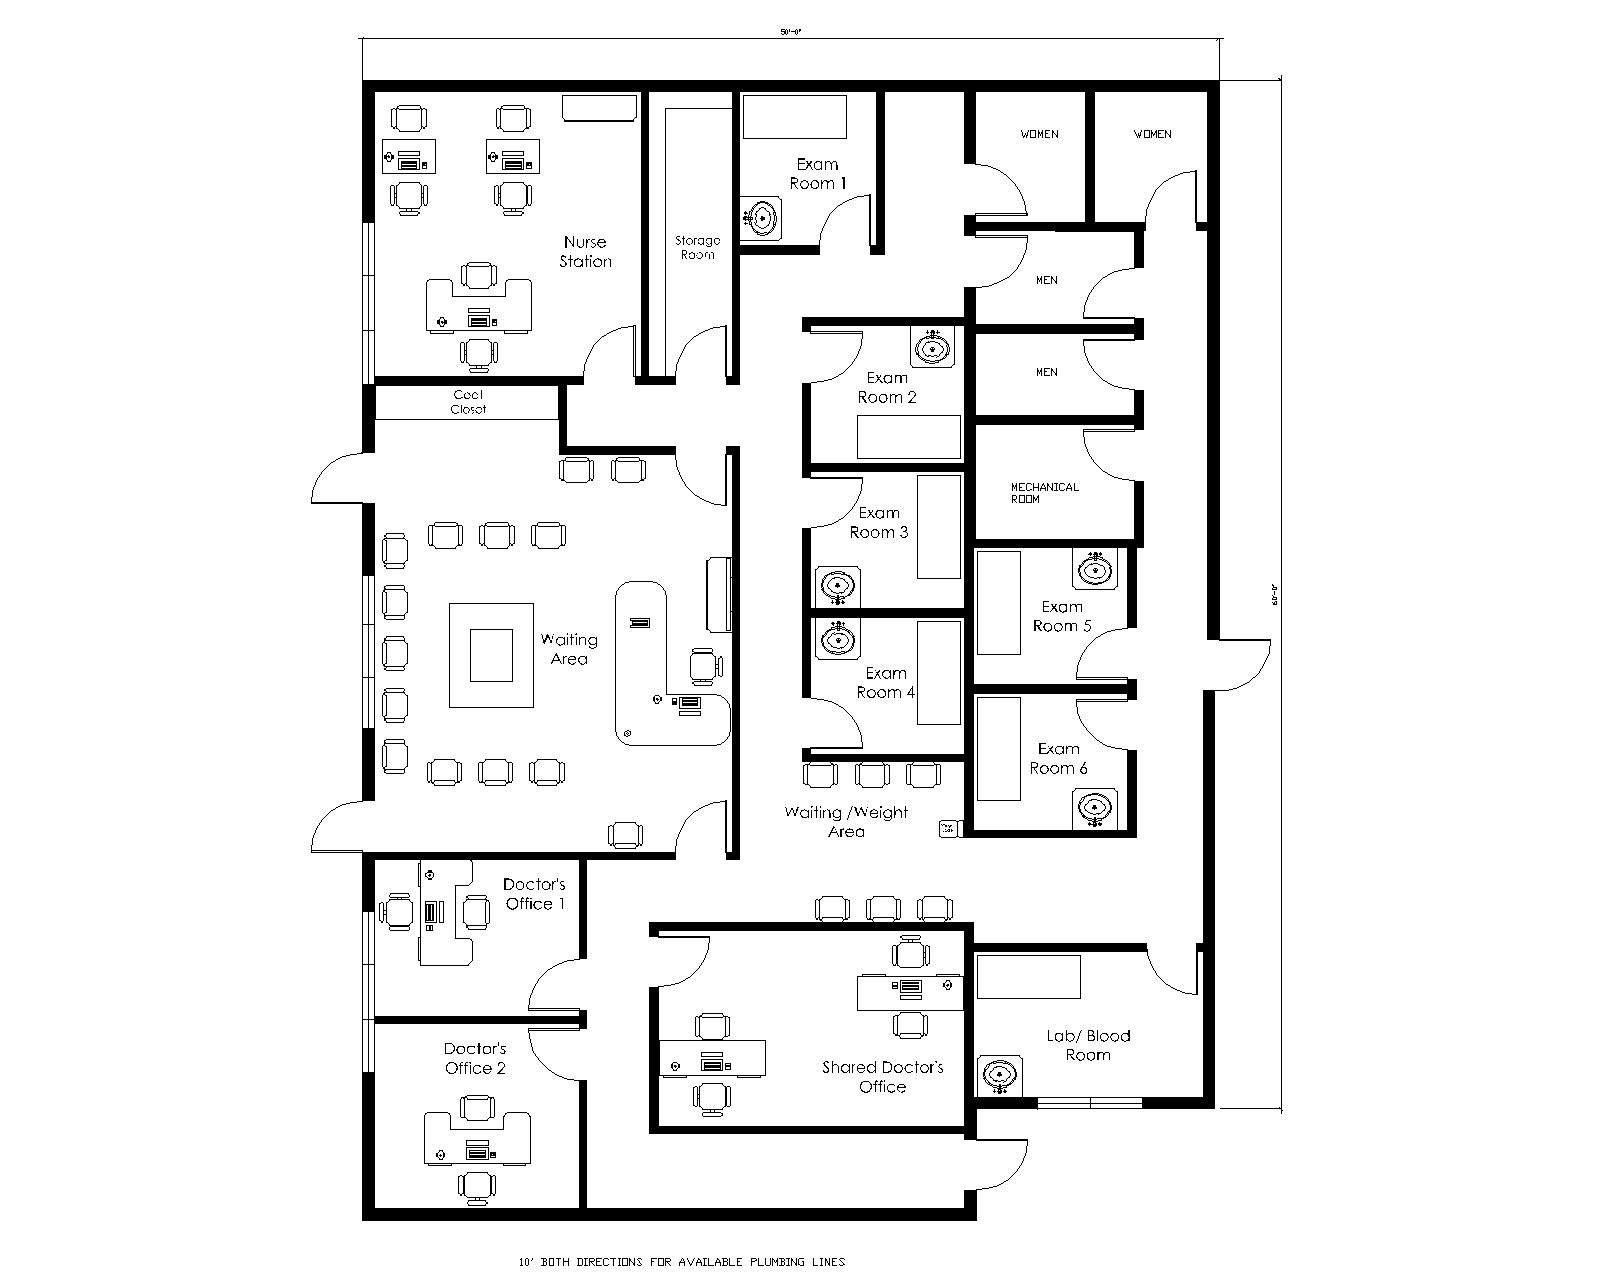 Medical office design plans doctors office layout design for Office layout design online